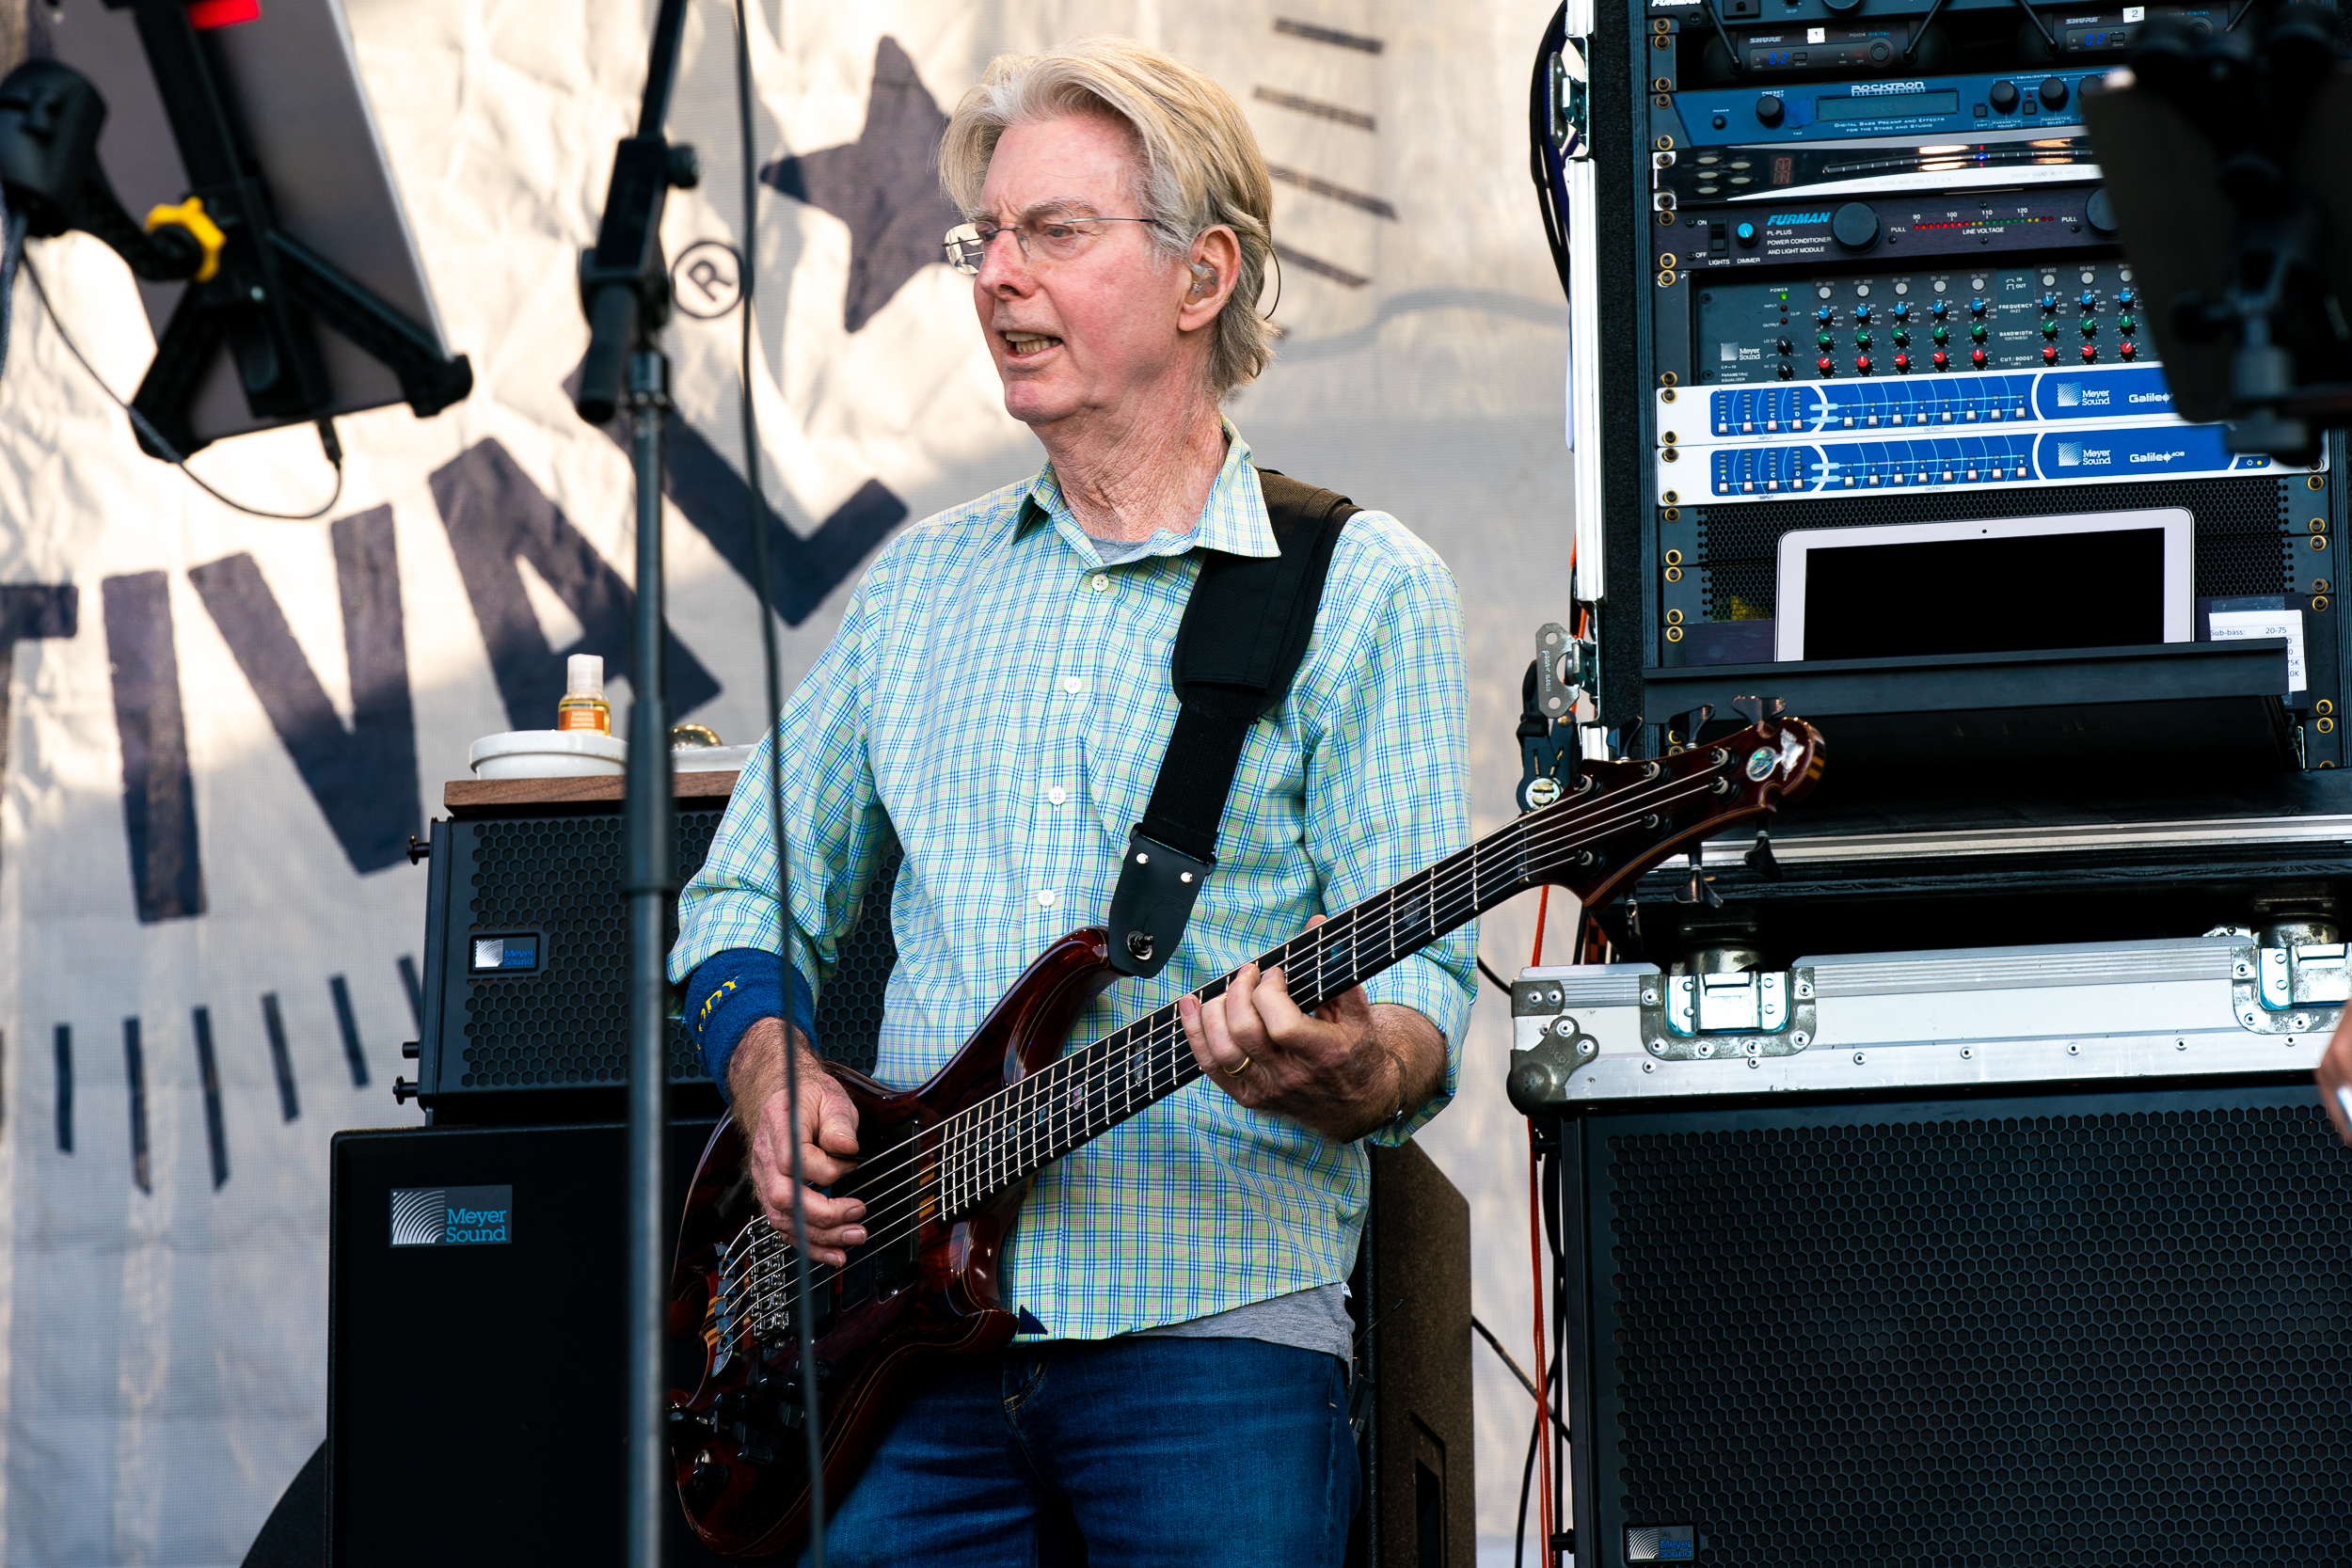 Phil Lesh and the Terrapin Family Band at Newport Folk Festival (Photo by Mauricio Castro)